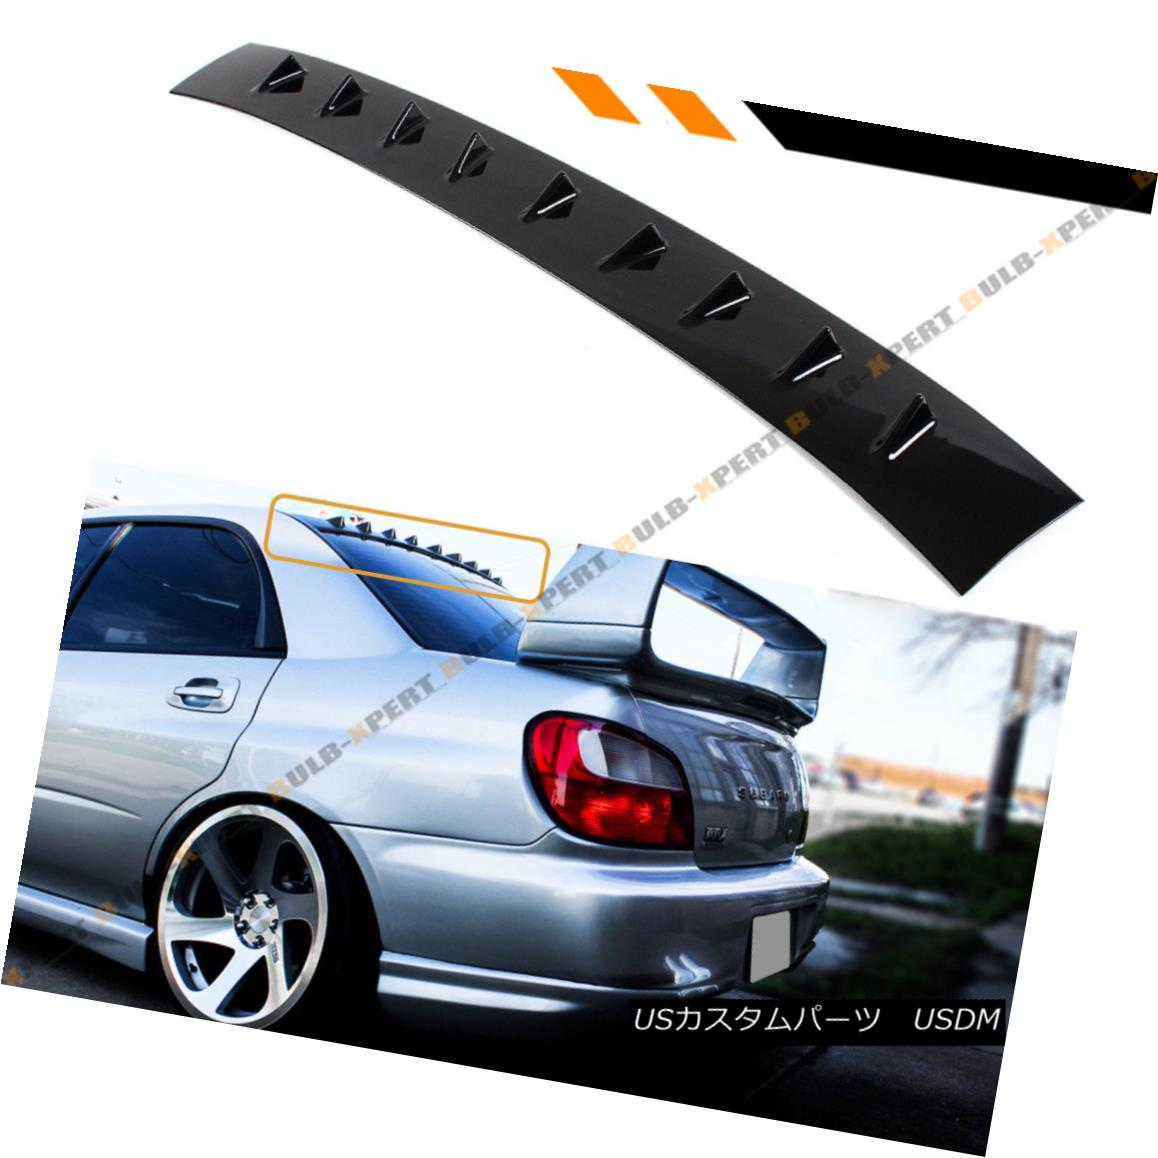 エアロパーツ FOR 02-07 IMPREZA WRX STI SHARK FIN GLOSS BLK REAR ROOF VORTEX GENERATOR SPOILER 02-07インプレッサWRX STI SHARK FIN GLOSS BLKリアルーフボルテックスジェネレータスポイラー